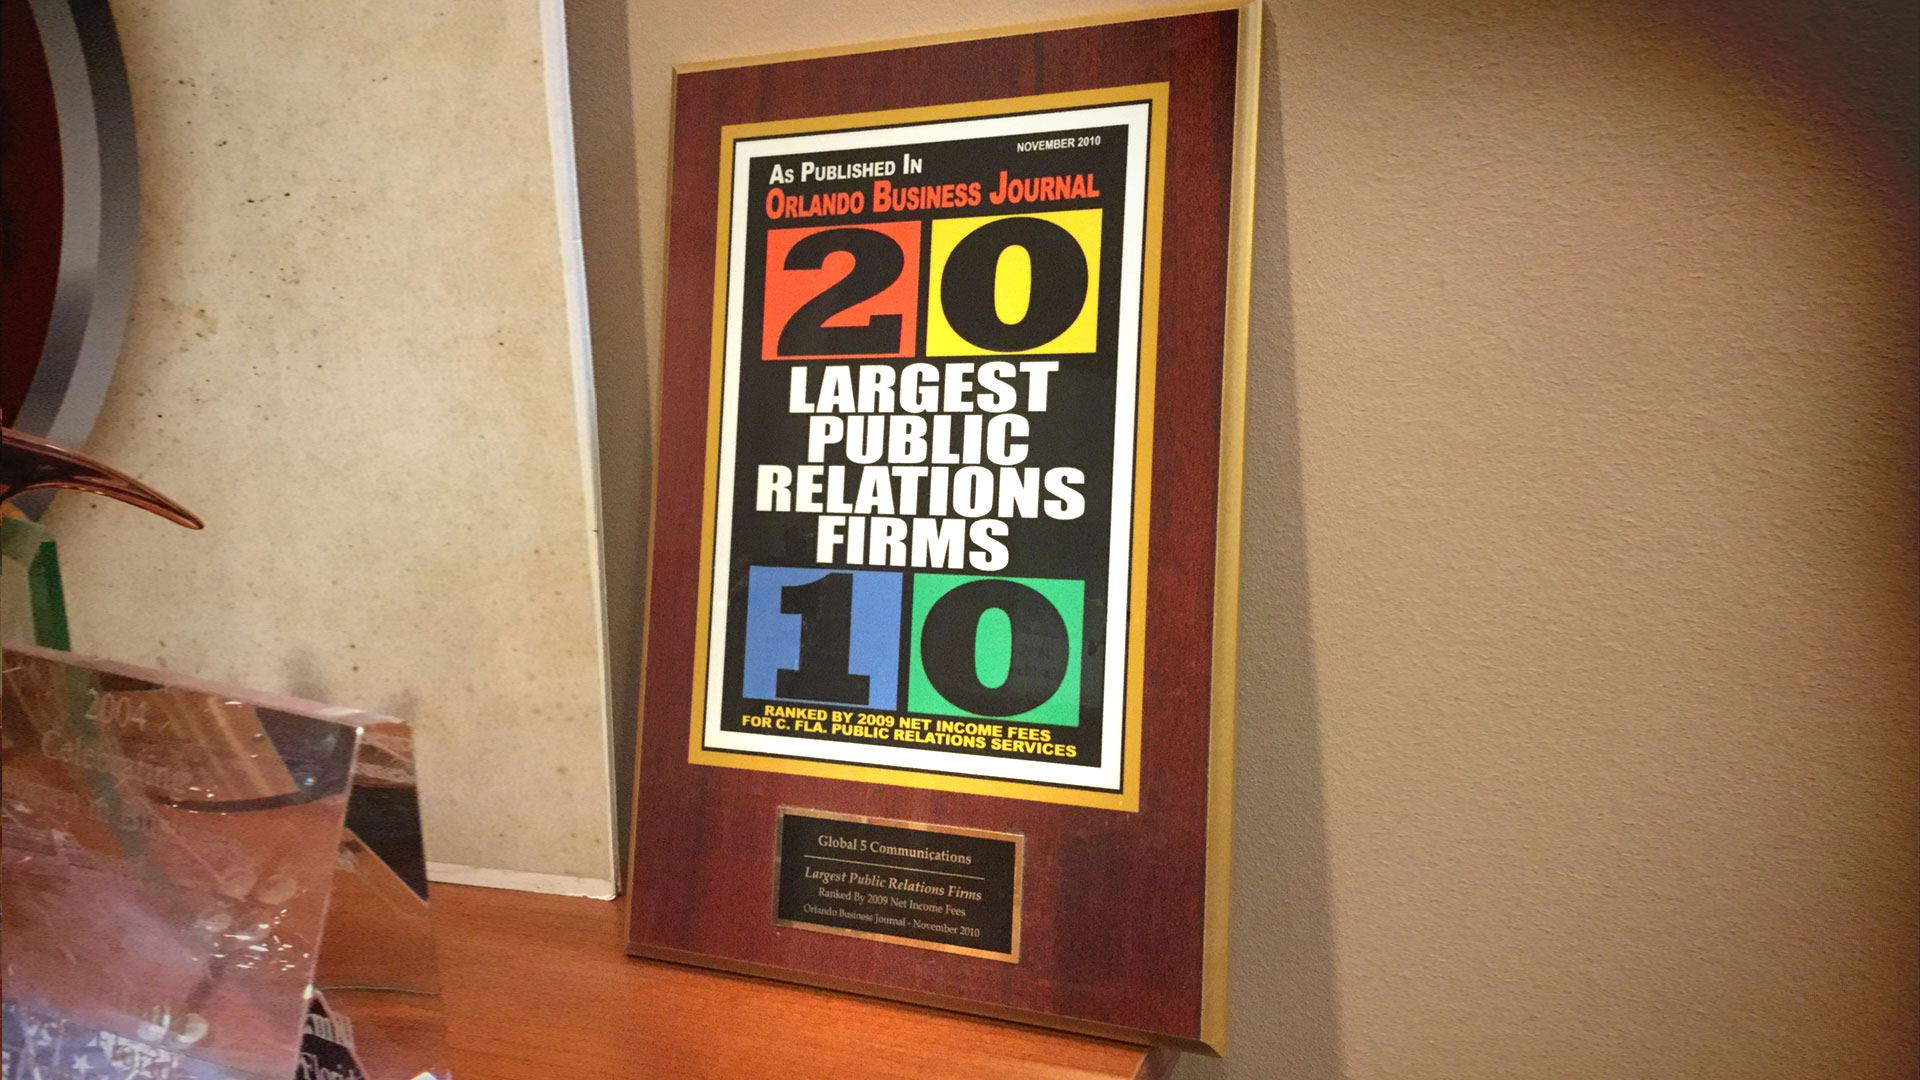 Orlando Business Journal Recognition as Second Largest Public Relations Firm for 2010